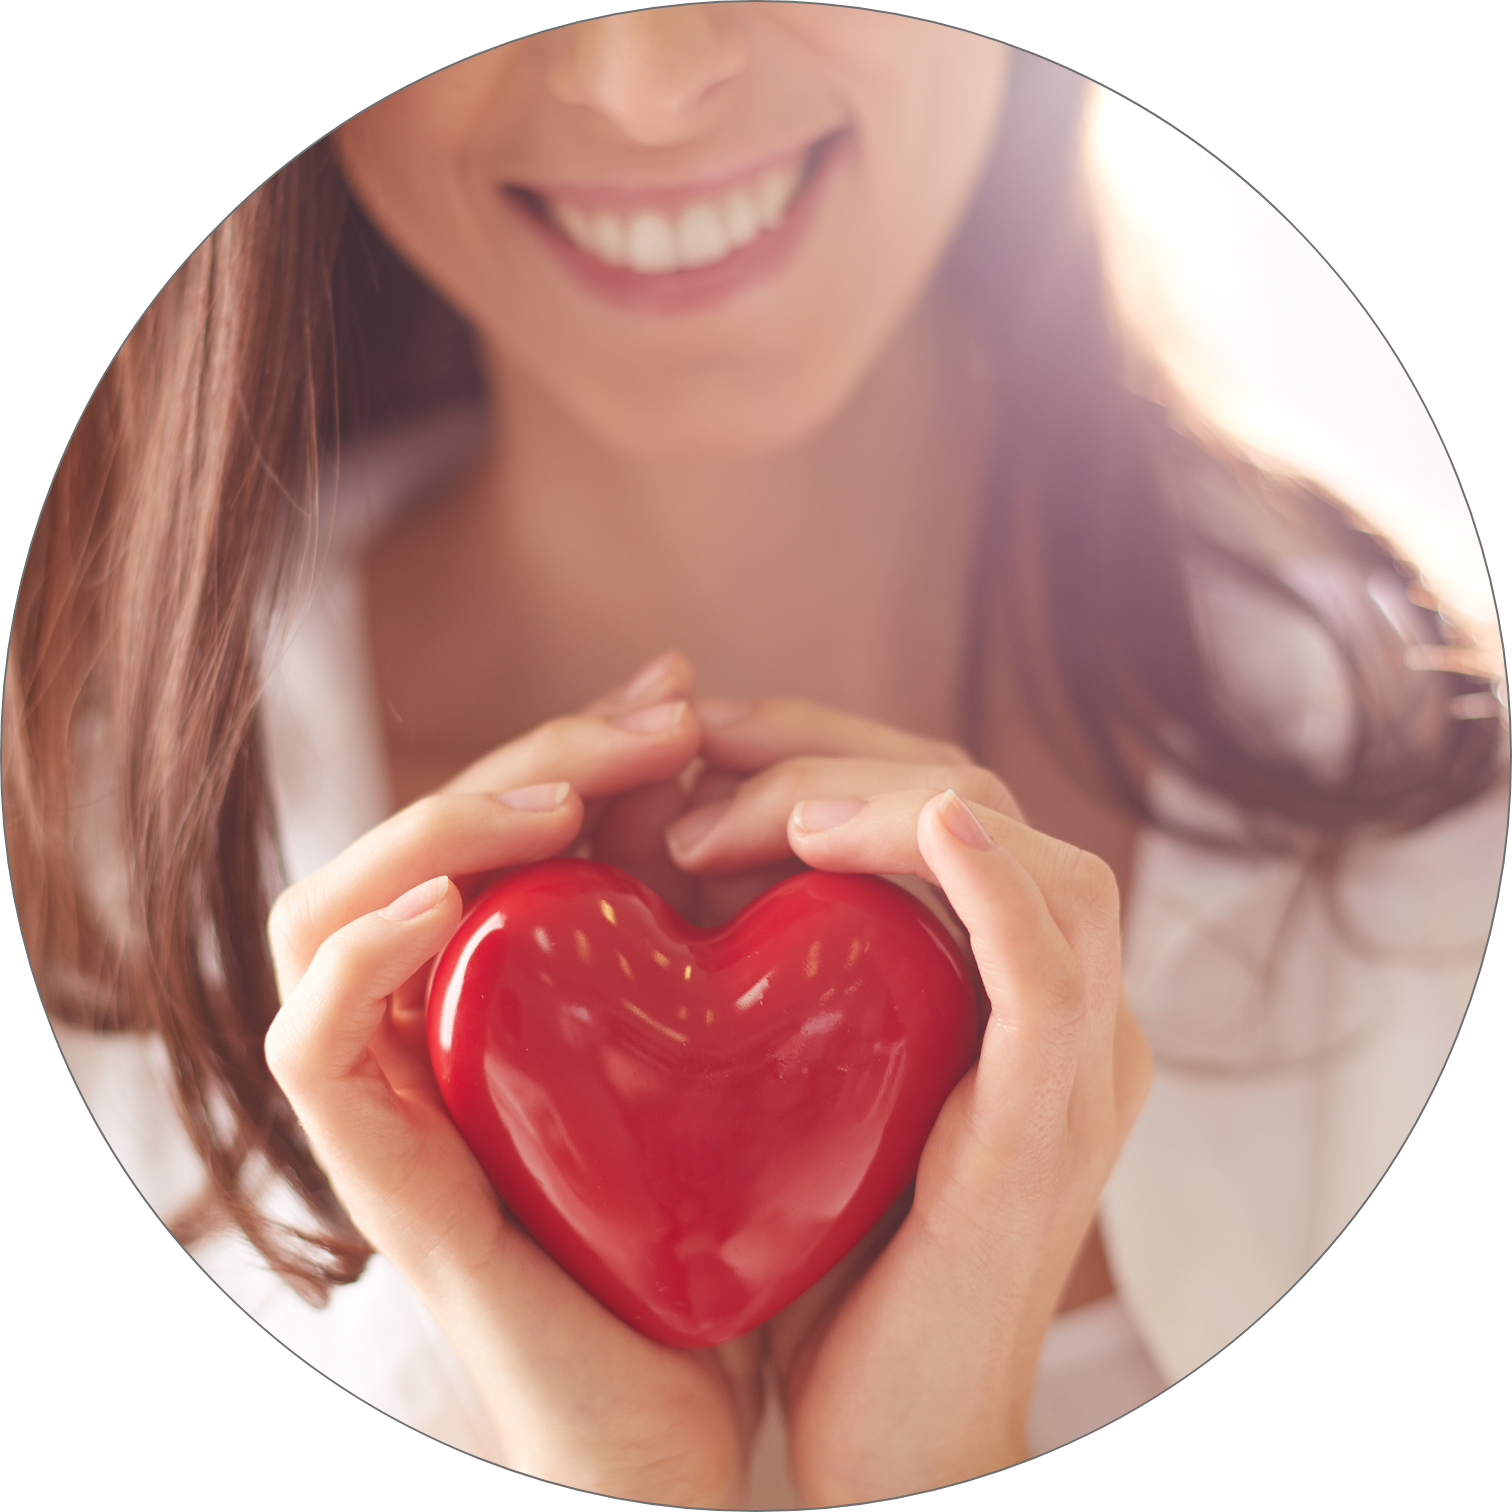 Smiling woman holding a red heart